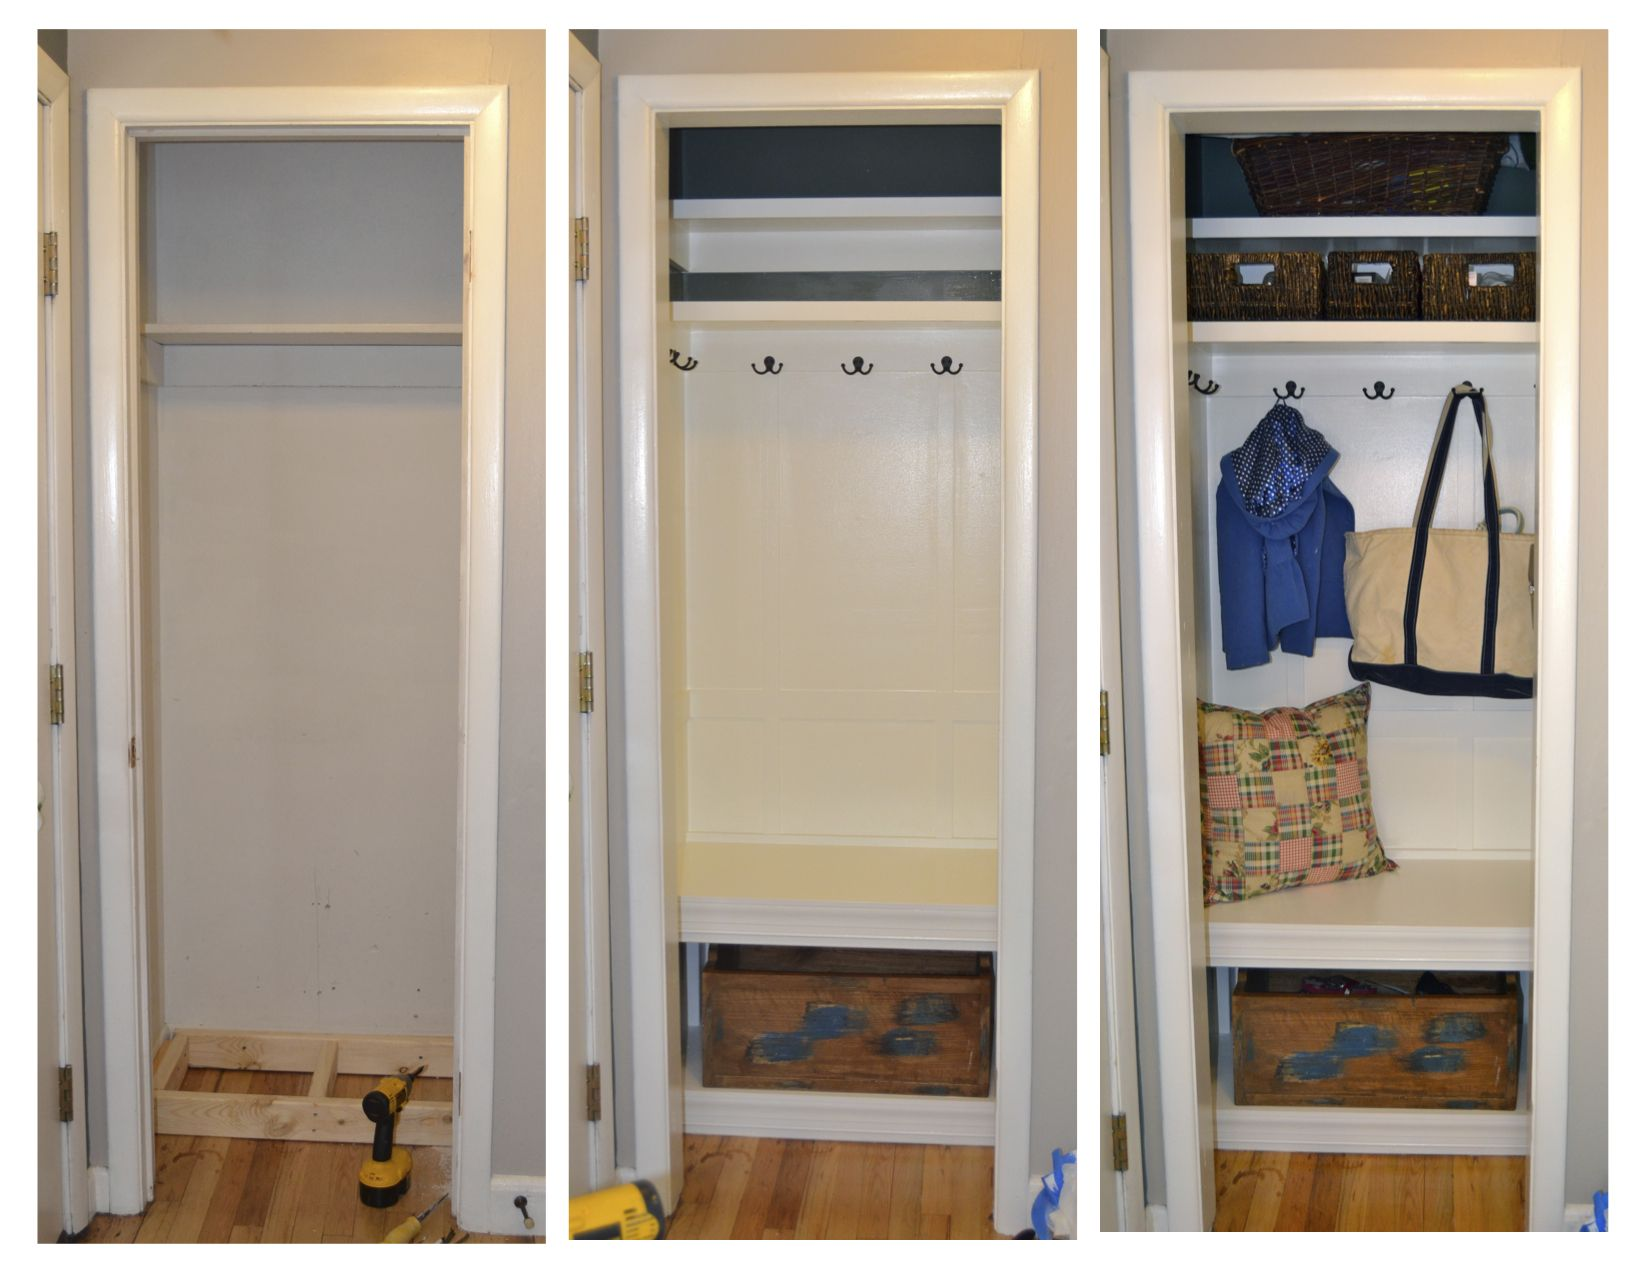 Foyer Closet Zone : My first home improvement inspired by pinterest our new